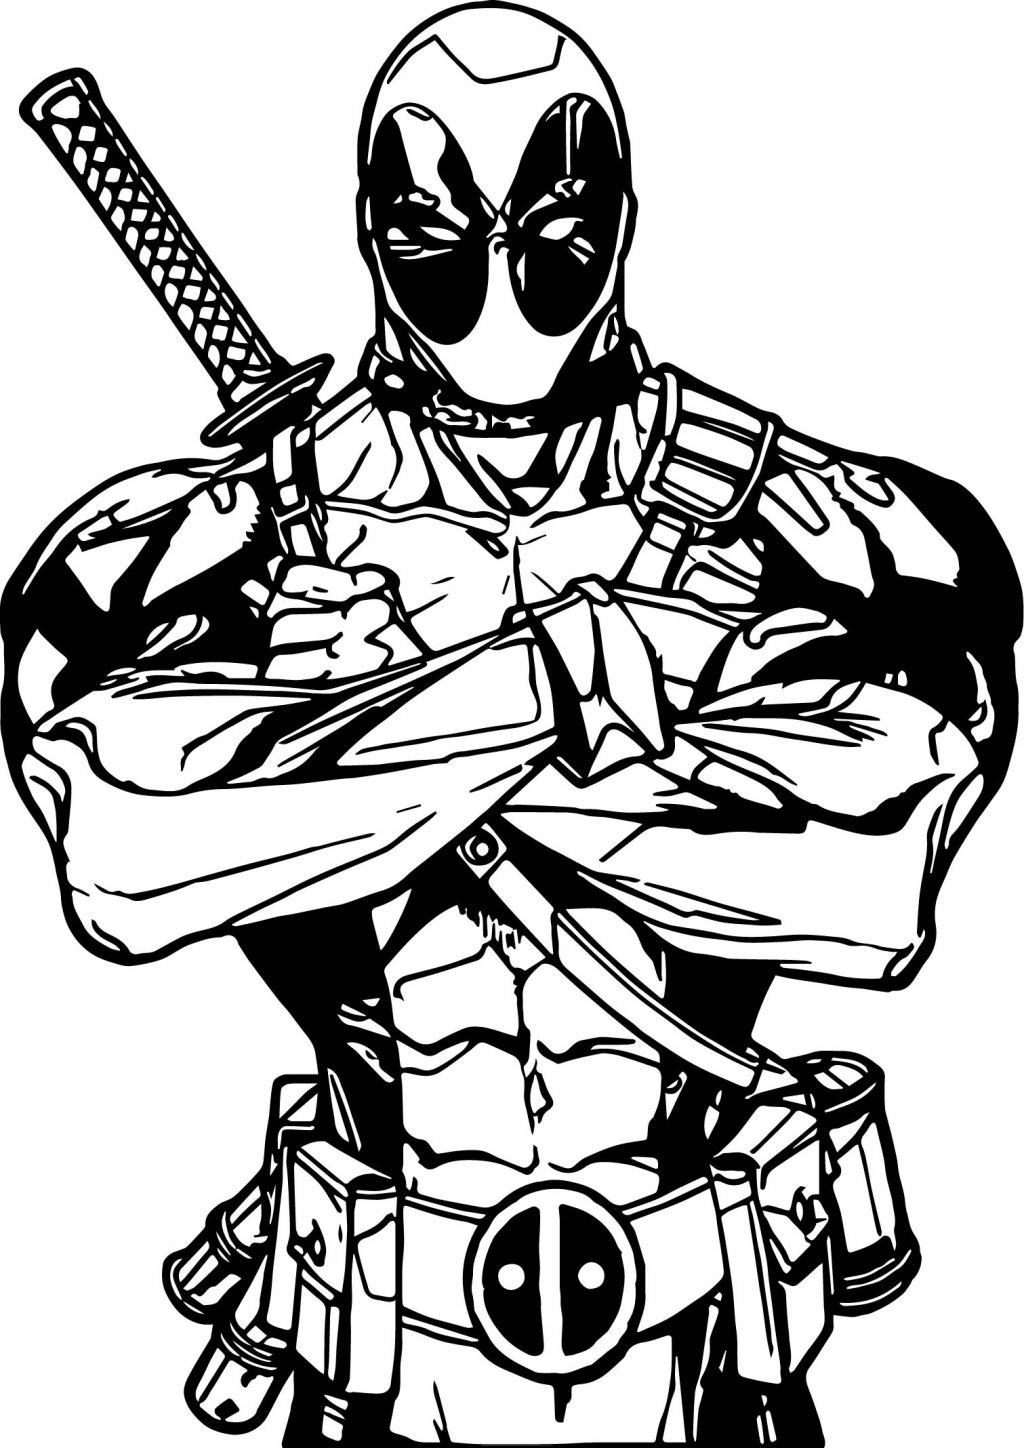 spiderman traceable spiderman drawing for kids free download on clipartmag traceable spiderman